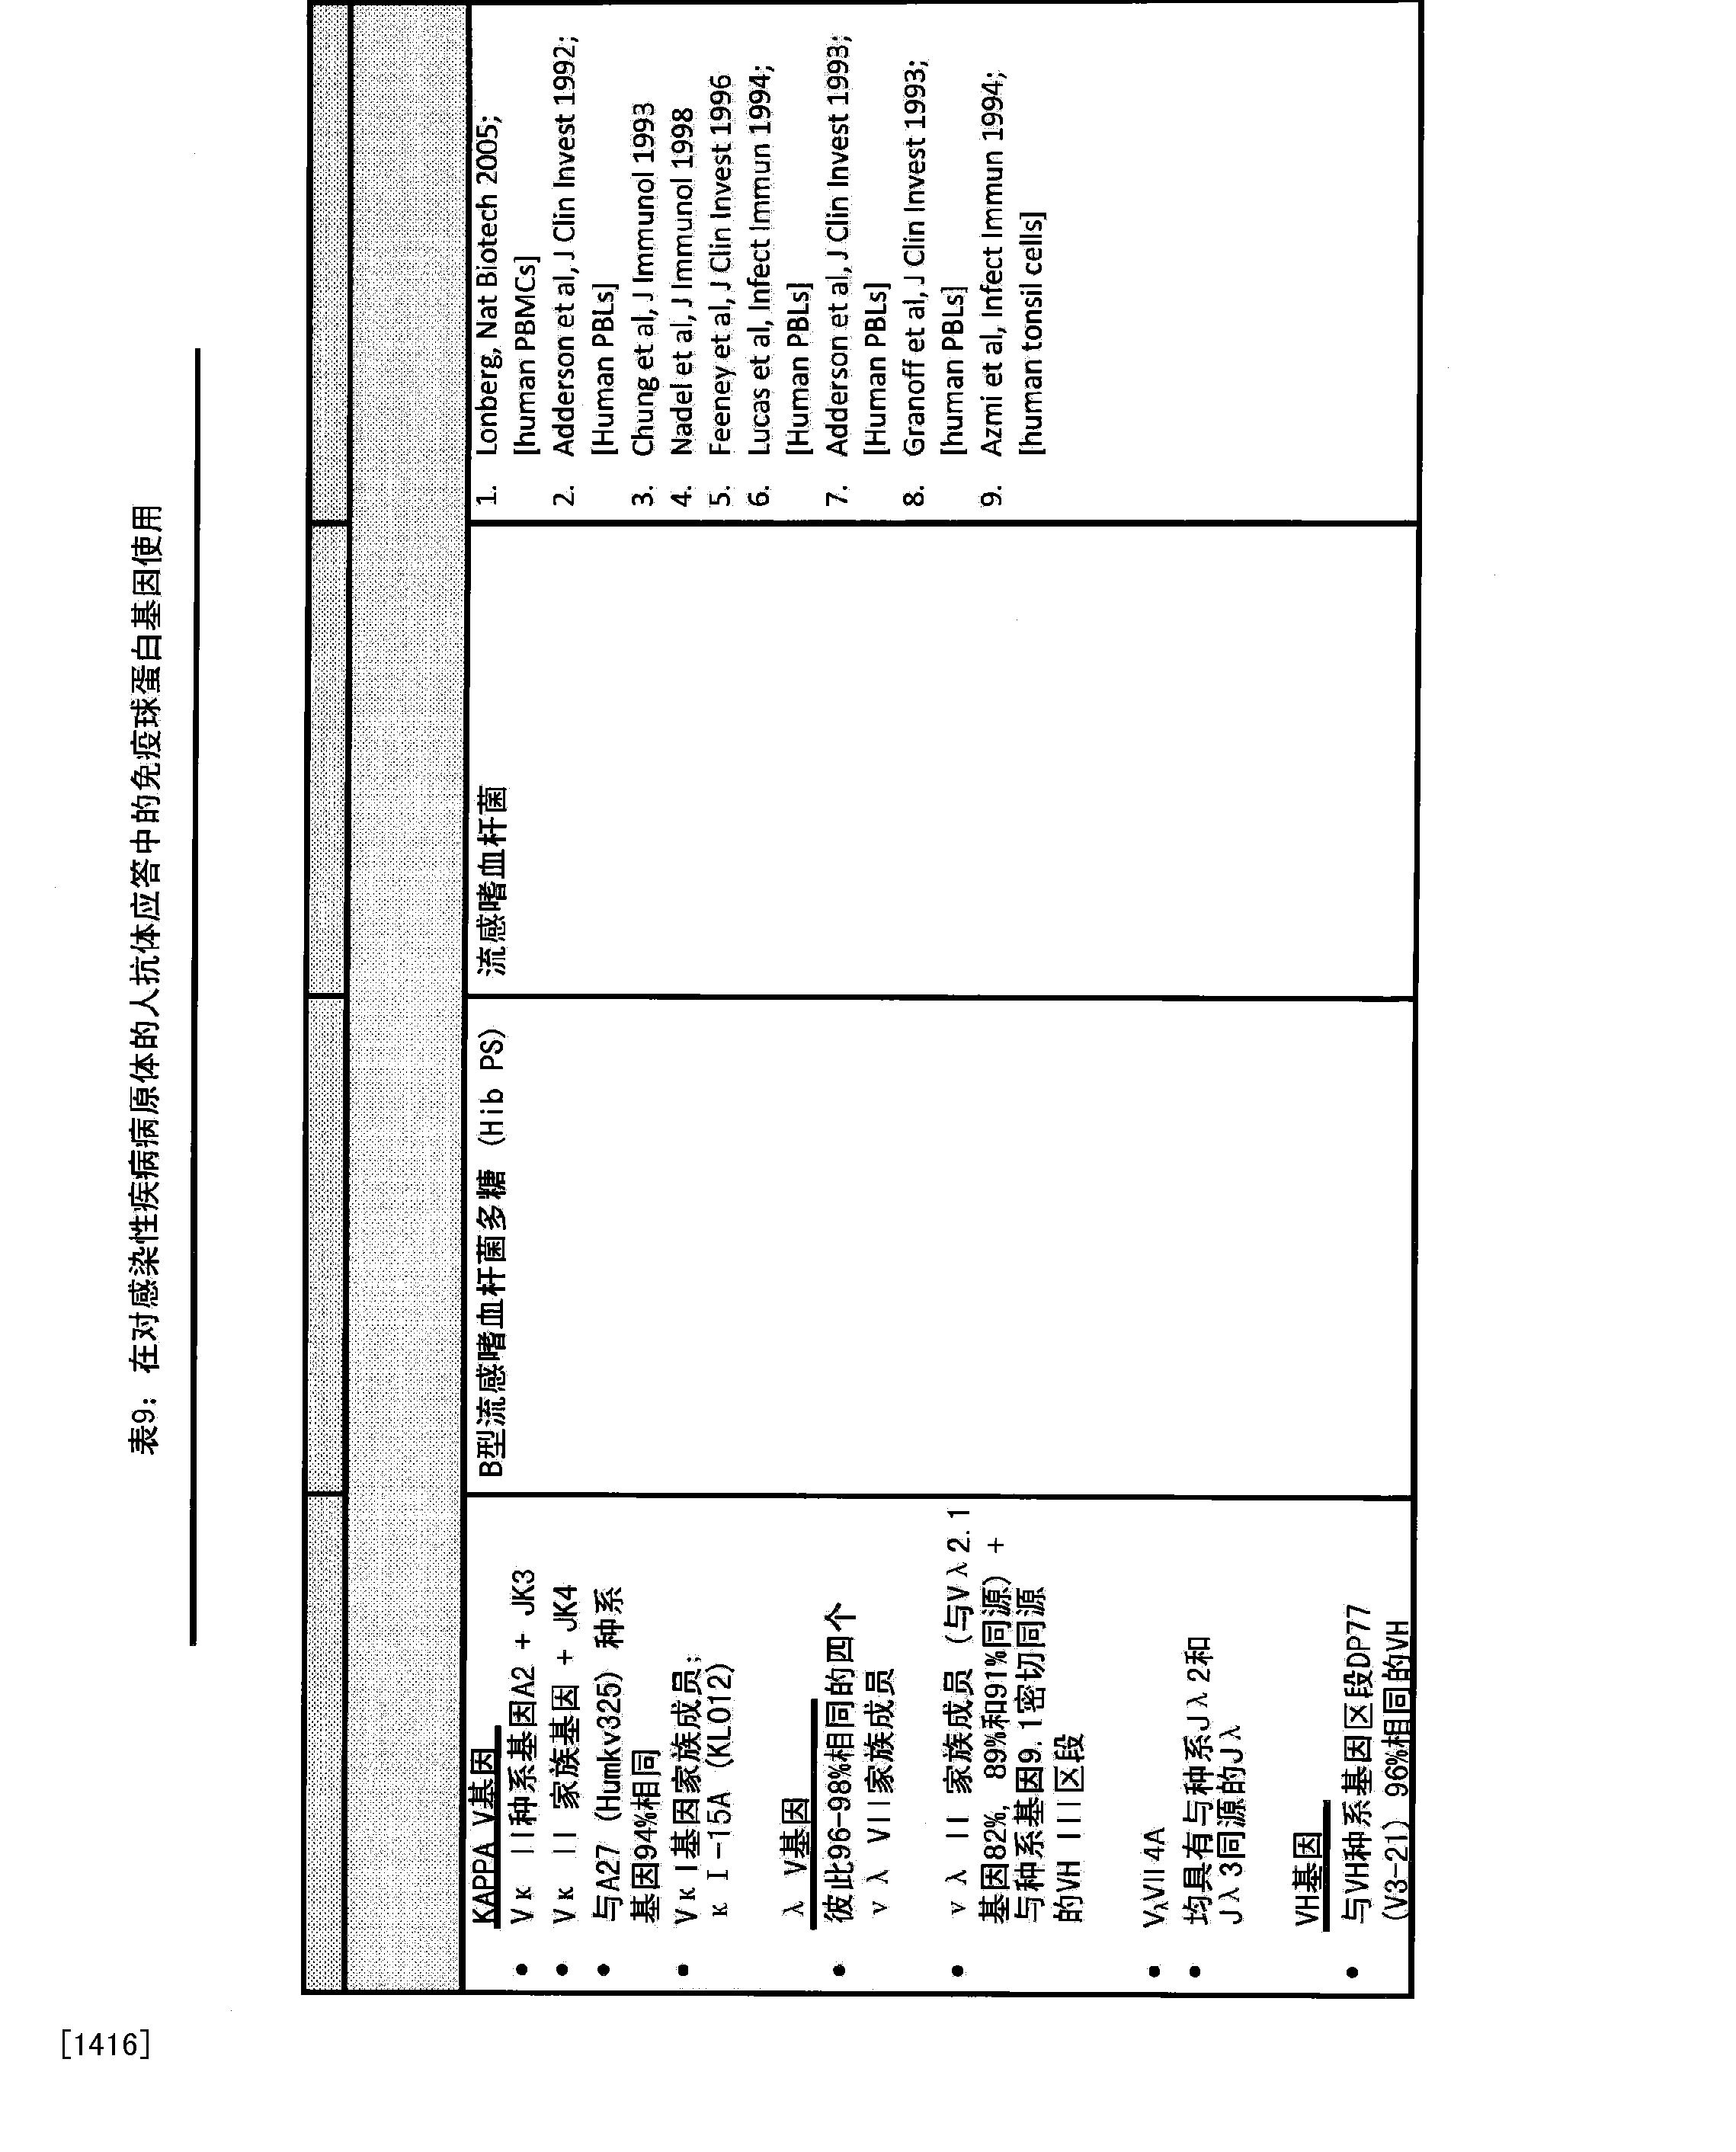 CN104080916A - Antibodies, variable domains & chains